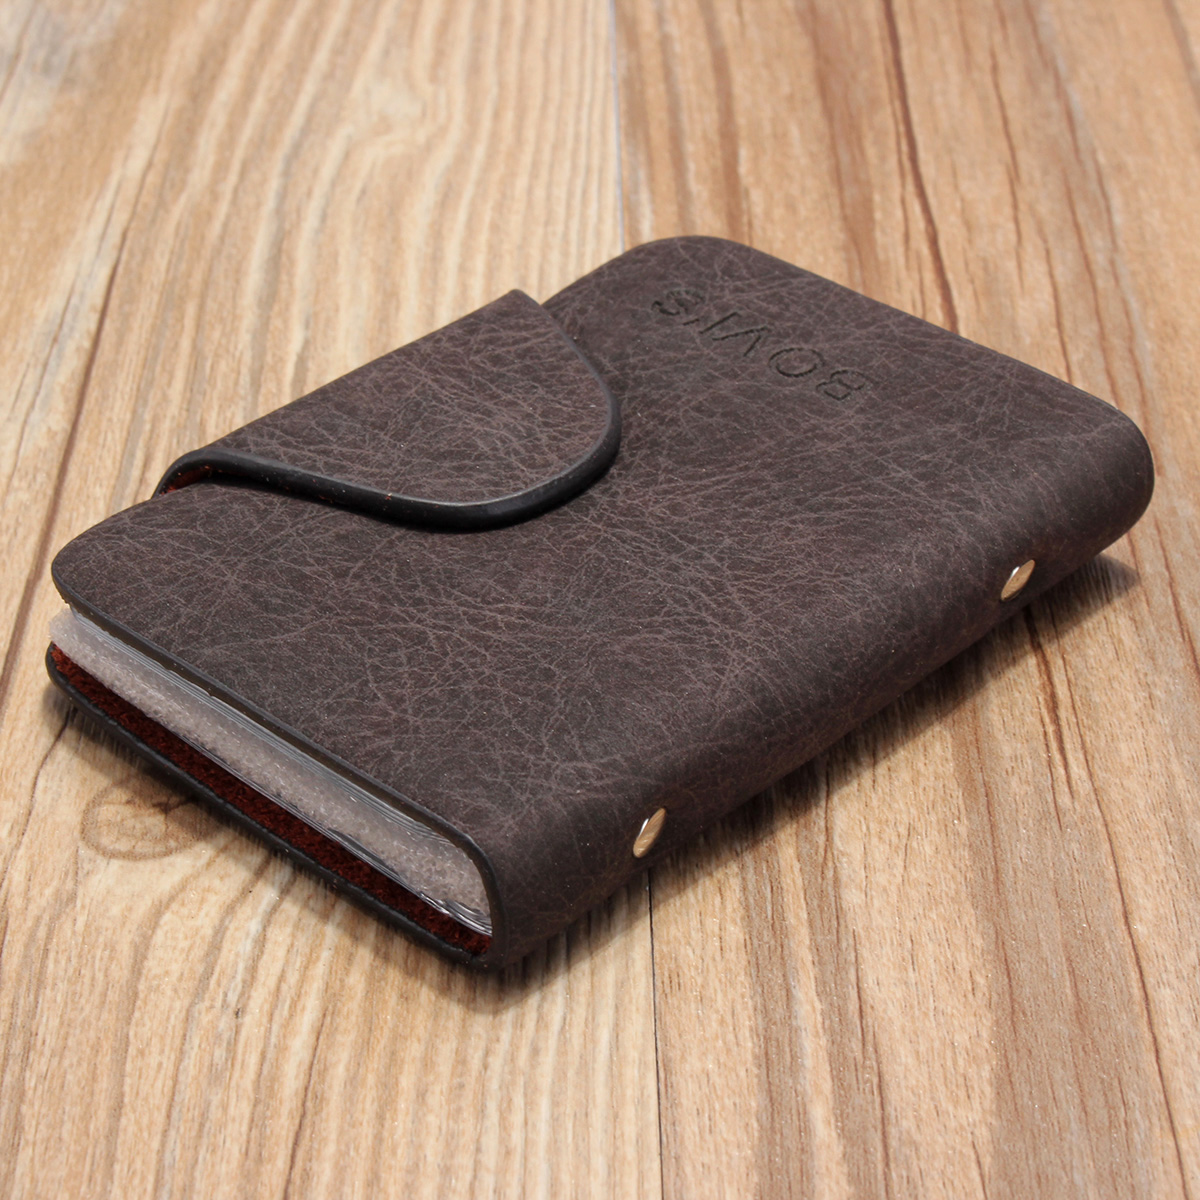 Product details of AEQUEEN Men Leather Business Credit Card Case ID Pocket Mini Wallet Holder Bag 20 Slots Dark Coffee